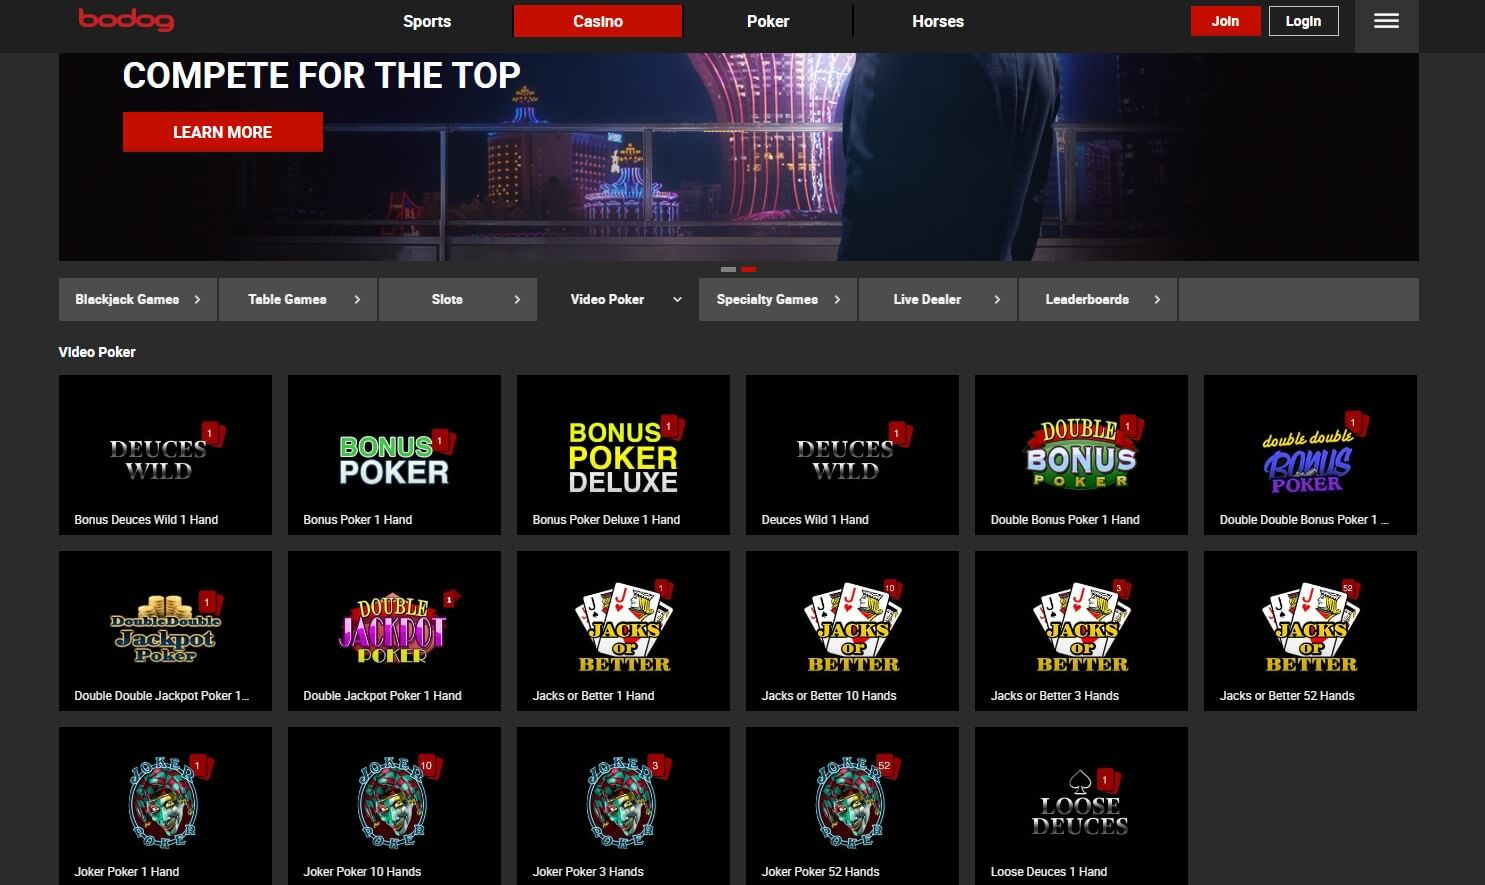 Play video poker at Bodog